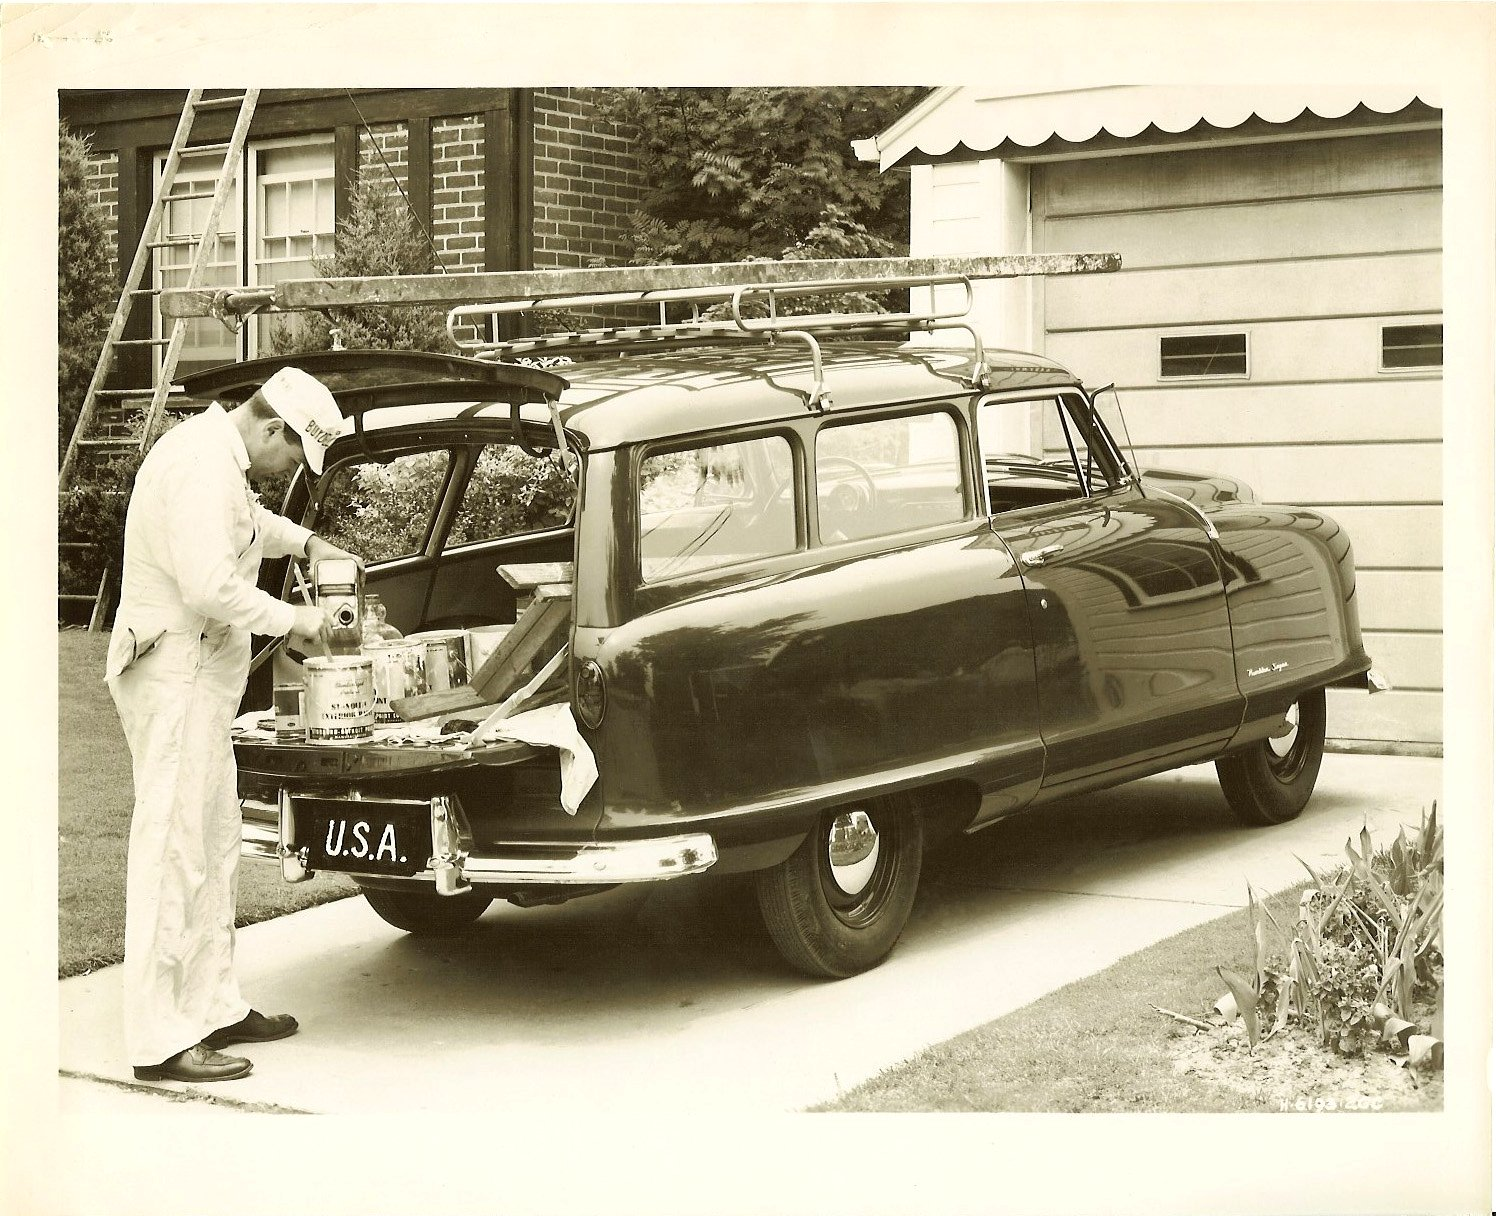 1952 NASH Rambler Deliveryman (2-Door Wagon) View from rear. 10″x8″ Black & White photograph H-6193-2GC